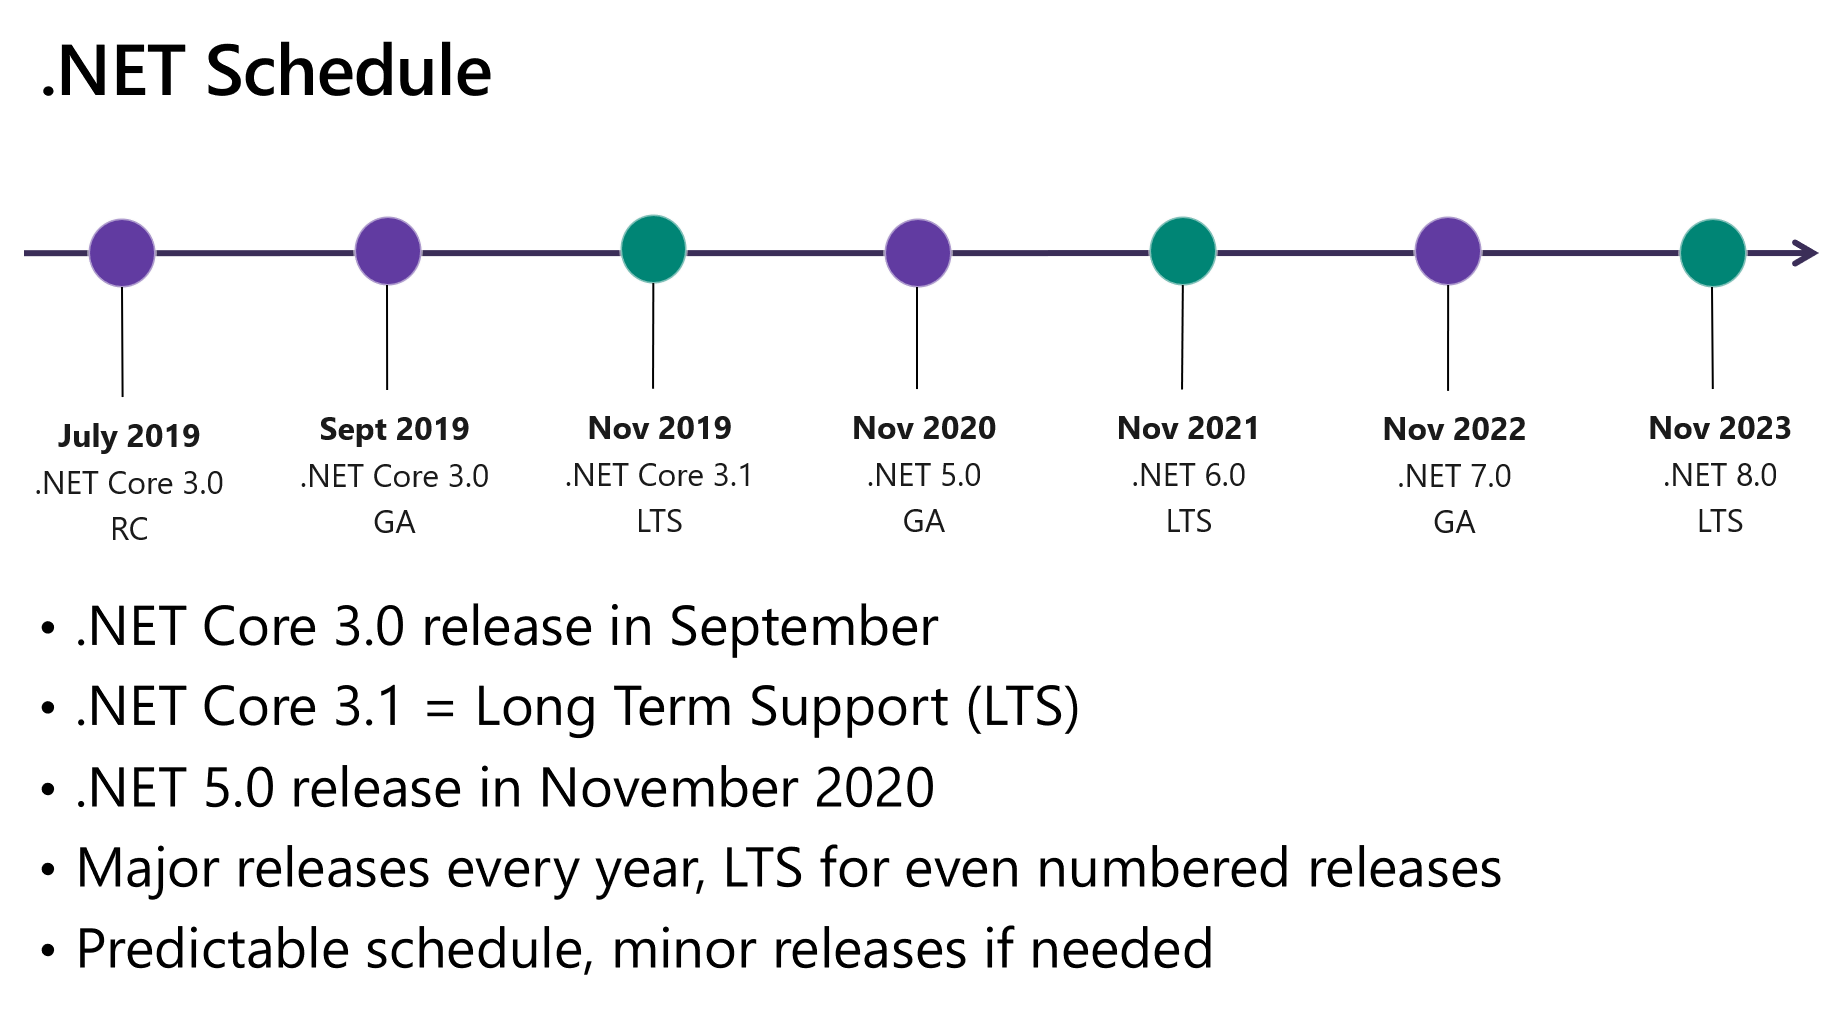 https://devblogs.microsoft.com/dotnet/wp-content/uploads/sites/10/2019/05/dotnet_schedule.png